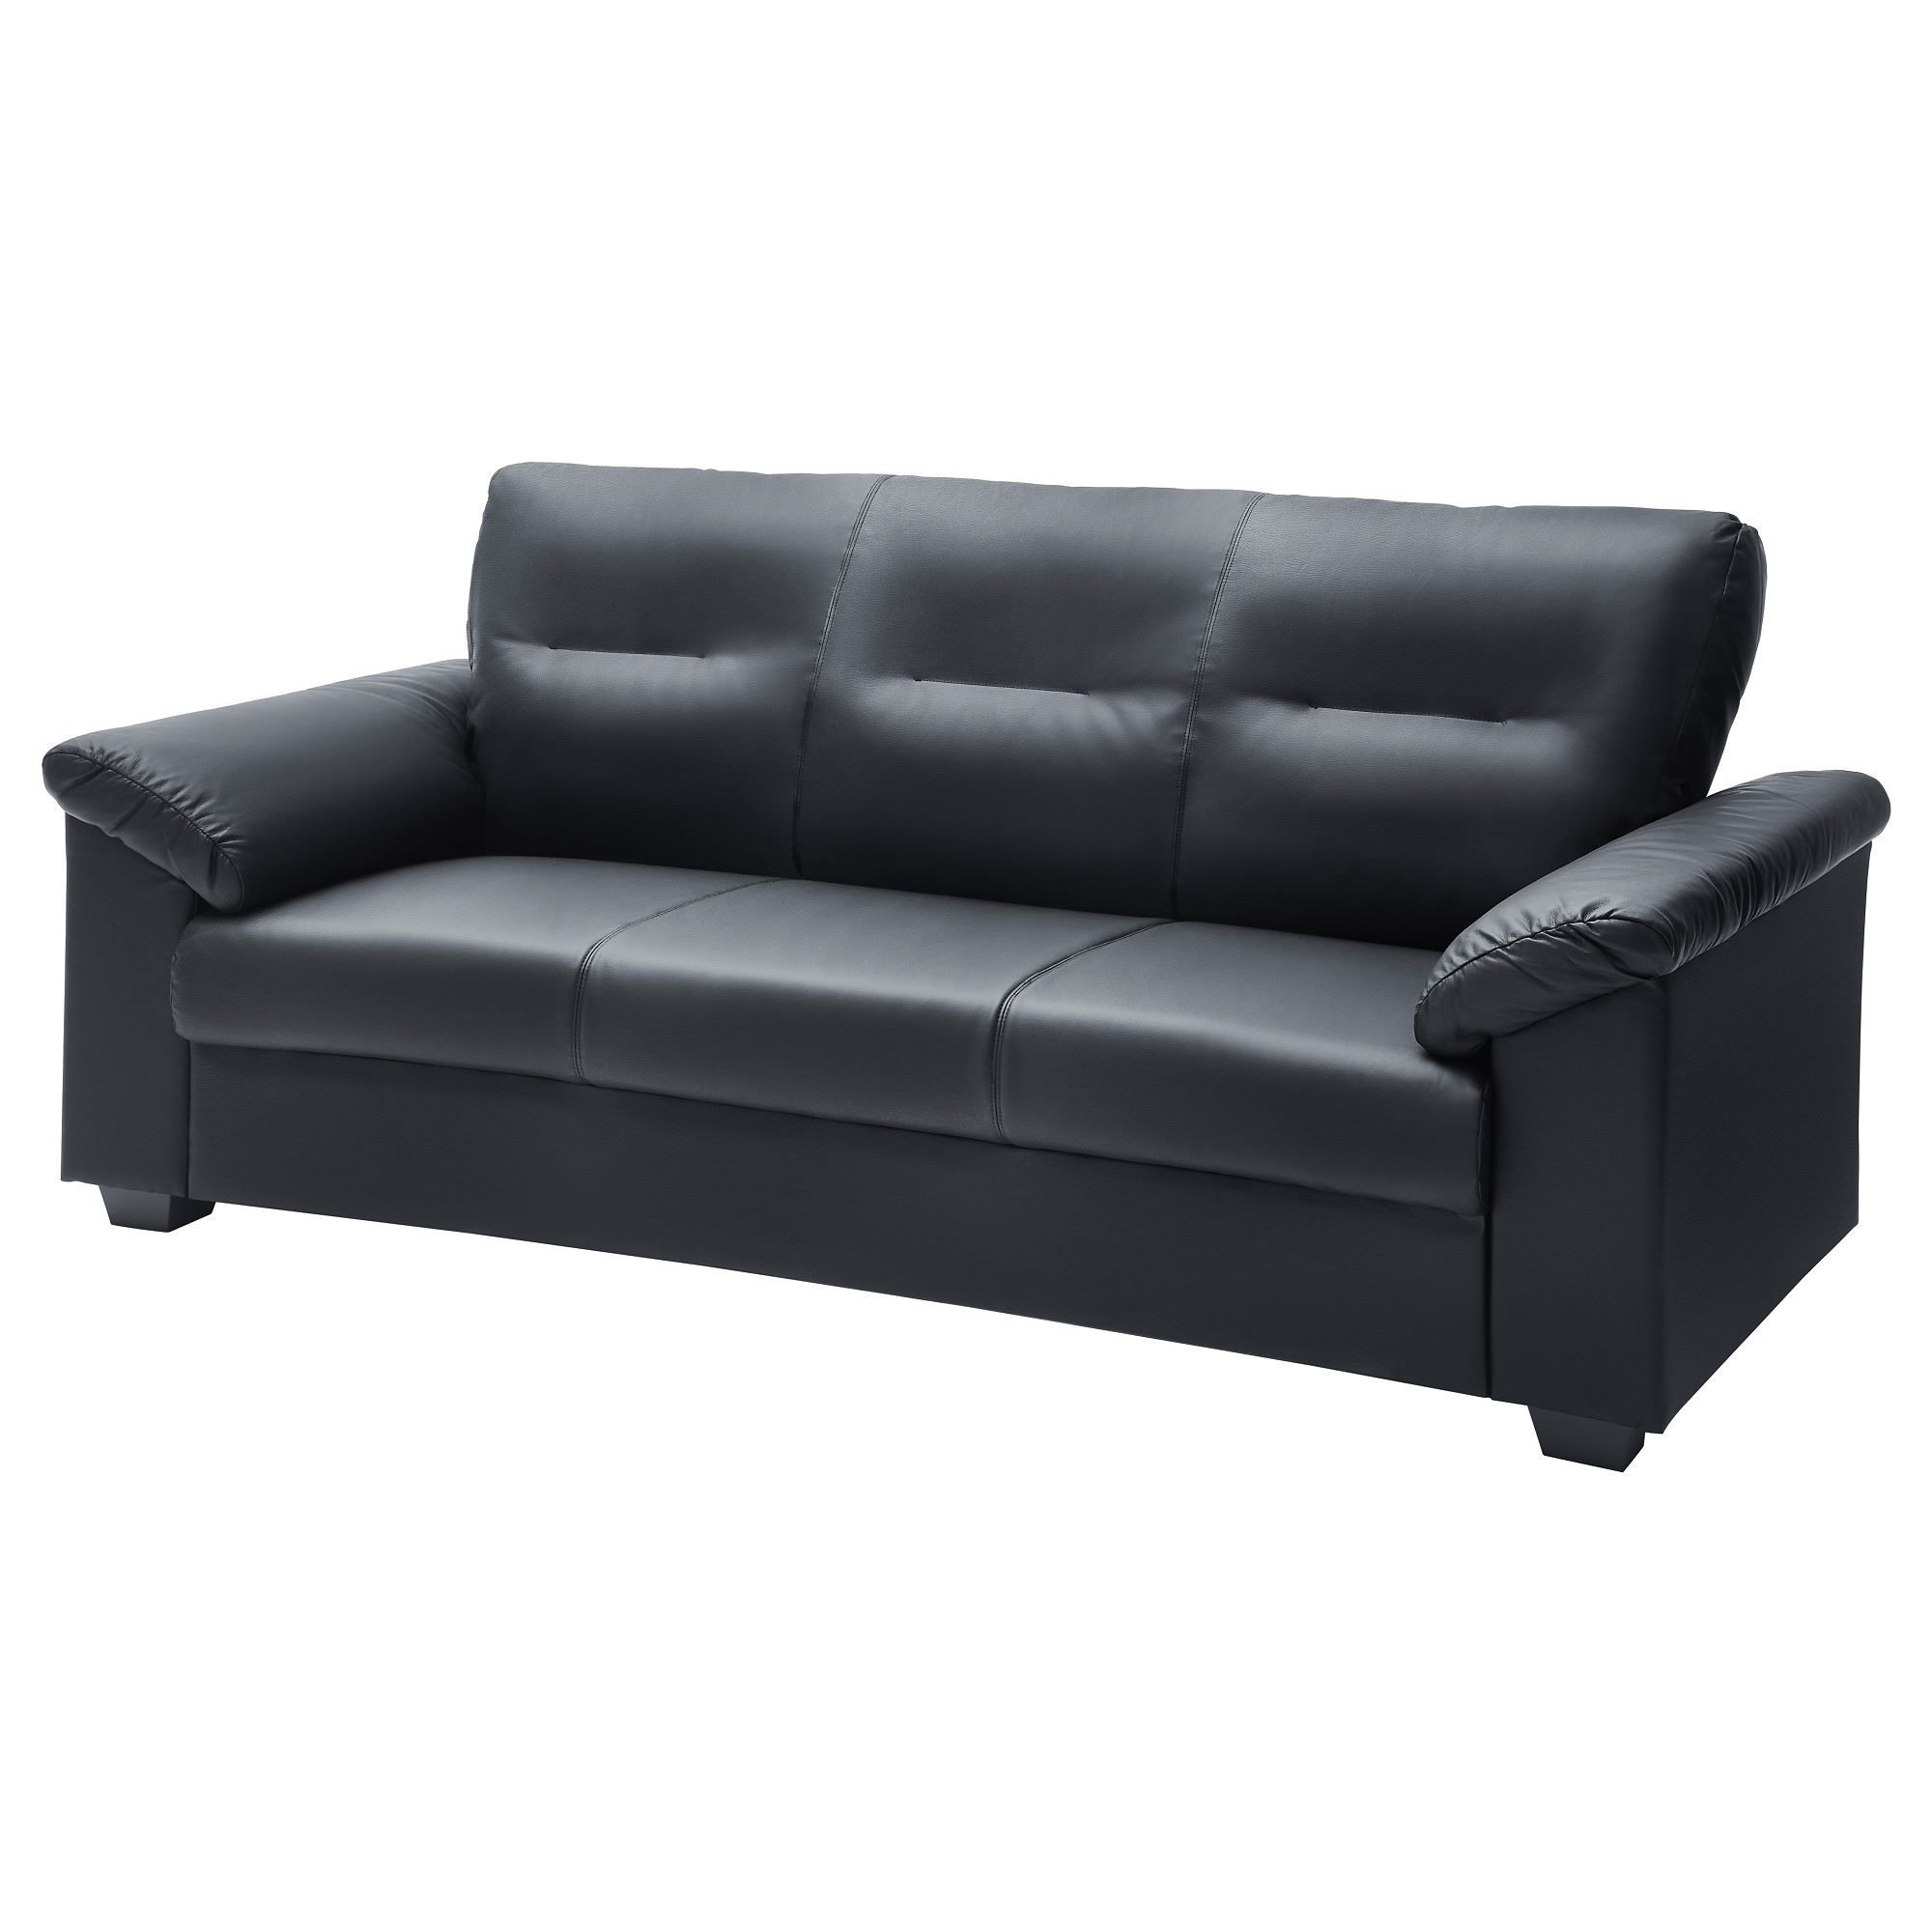 Knislinge Sofa Ikea Intended For 3 Seater Leather Sofas (Image 9 of 15)